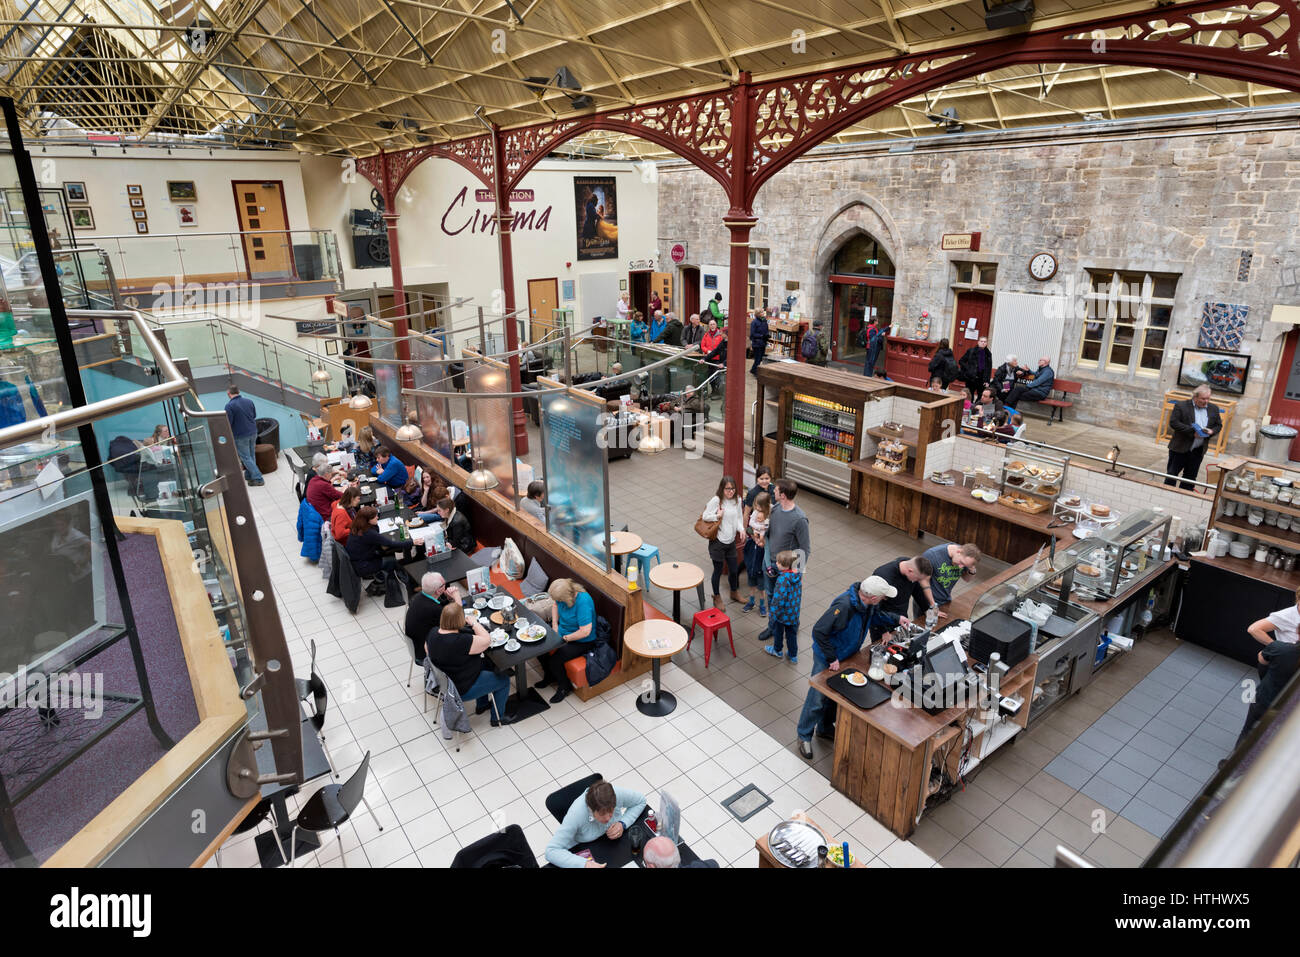 The interior of the former railway station, now a retail and entertainment complex, Richmond, North Yorkshire, UK - Stock Image